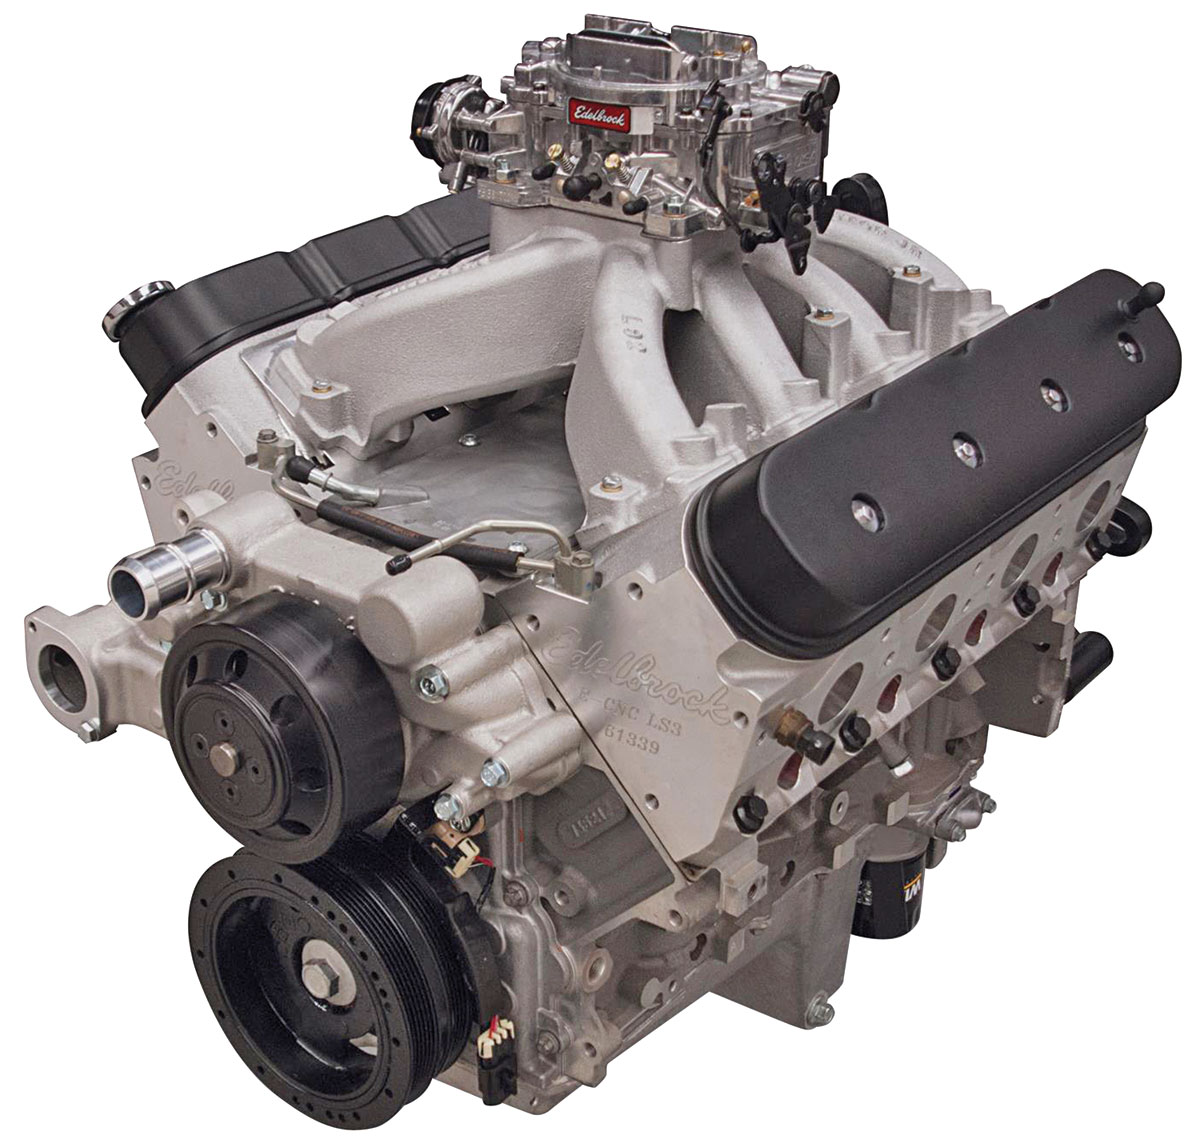 Photo of Crate Engine Victor Jr. LS 416 long block carbureted complete